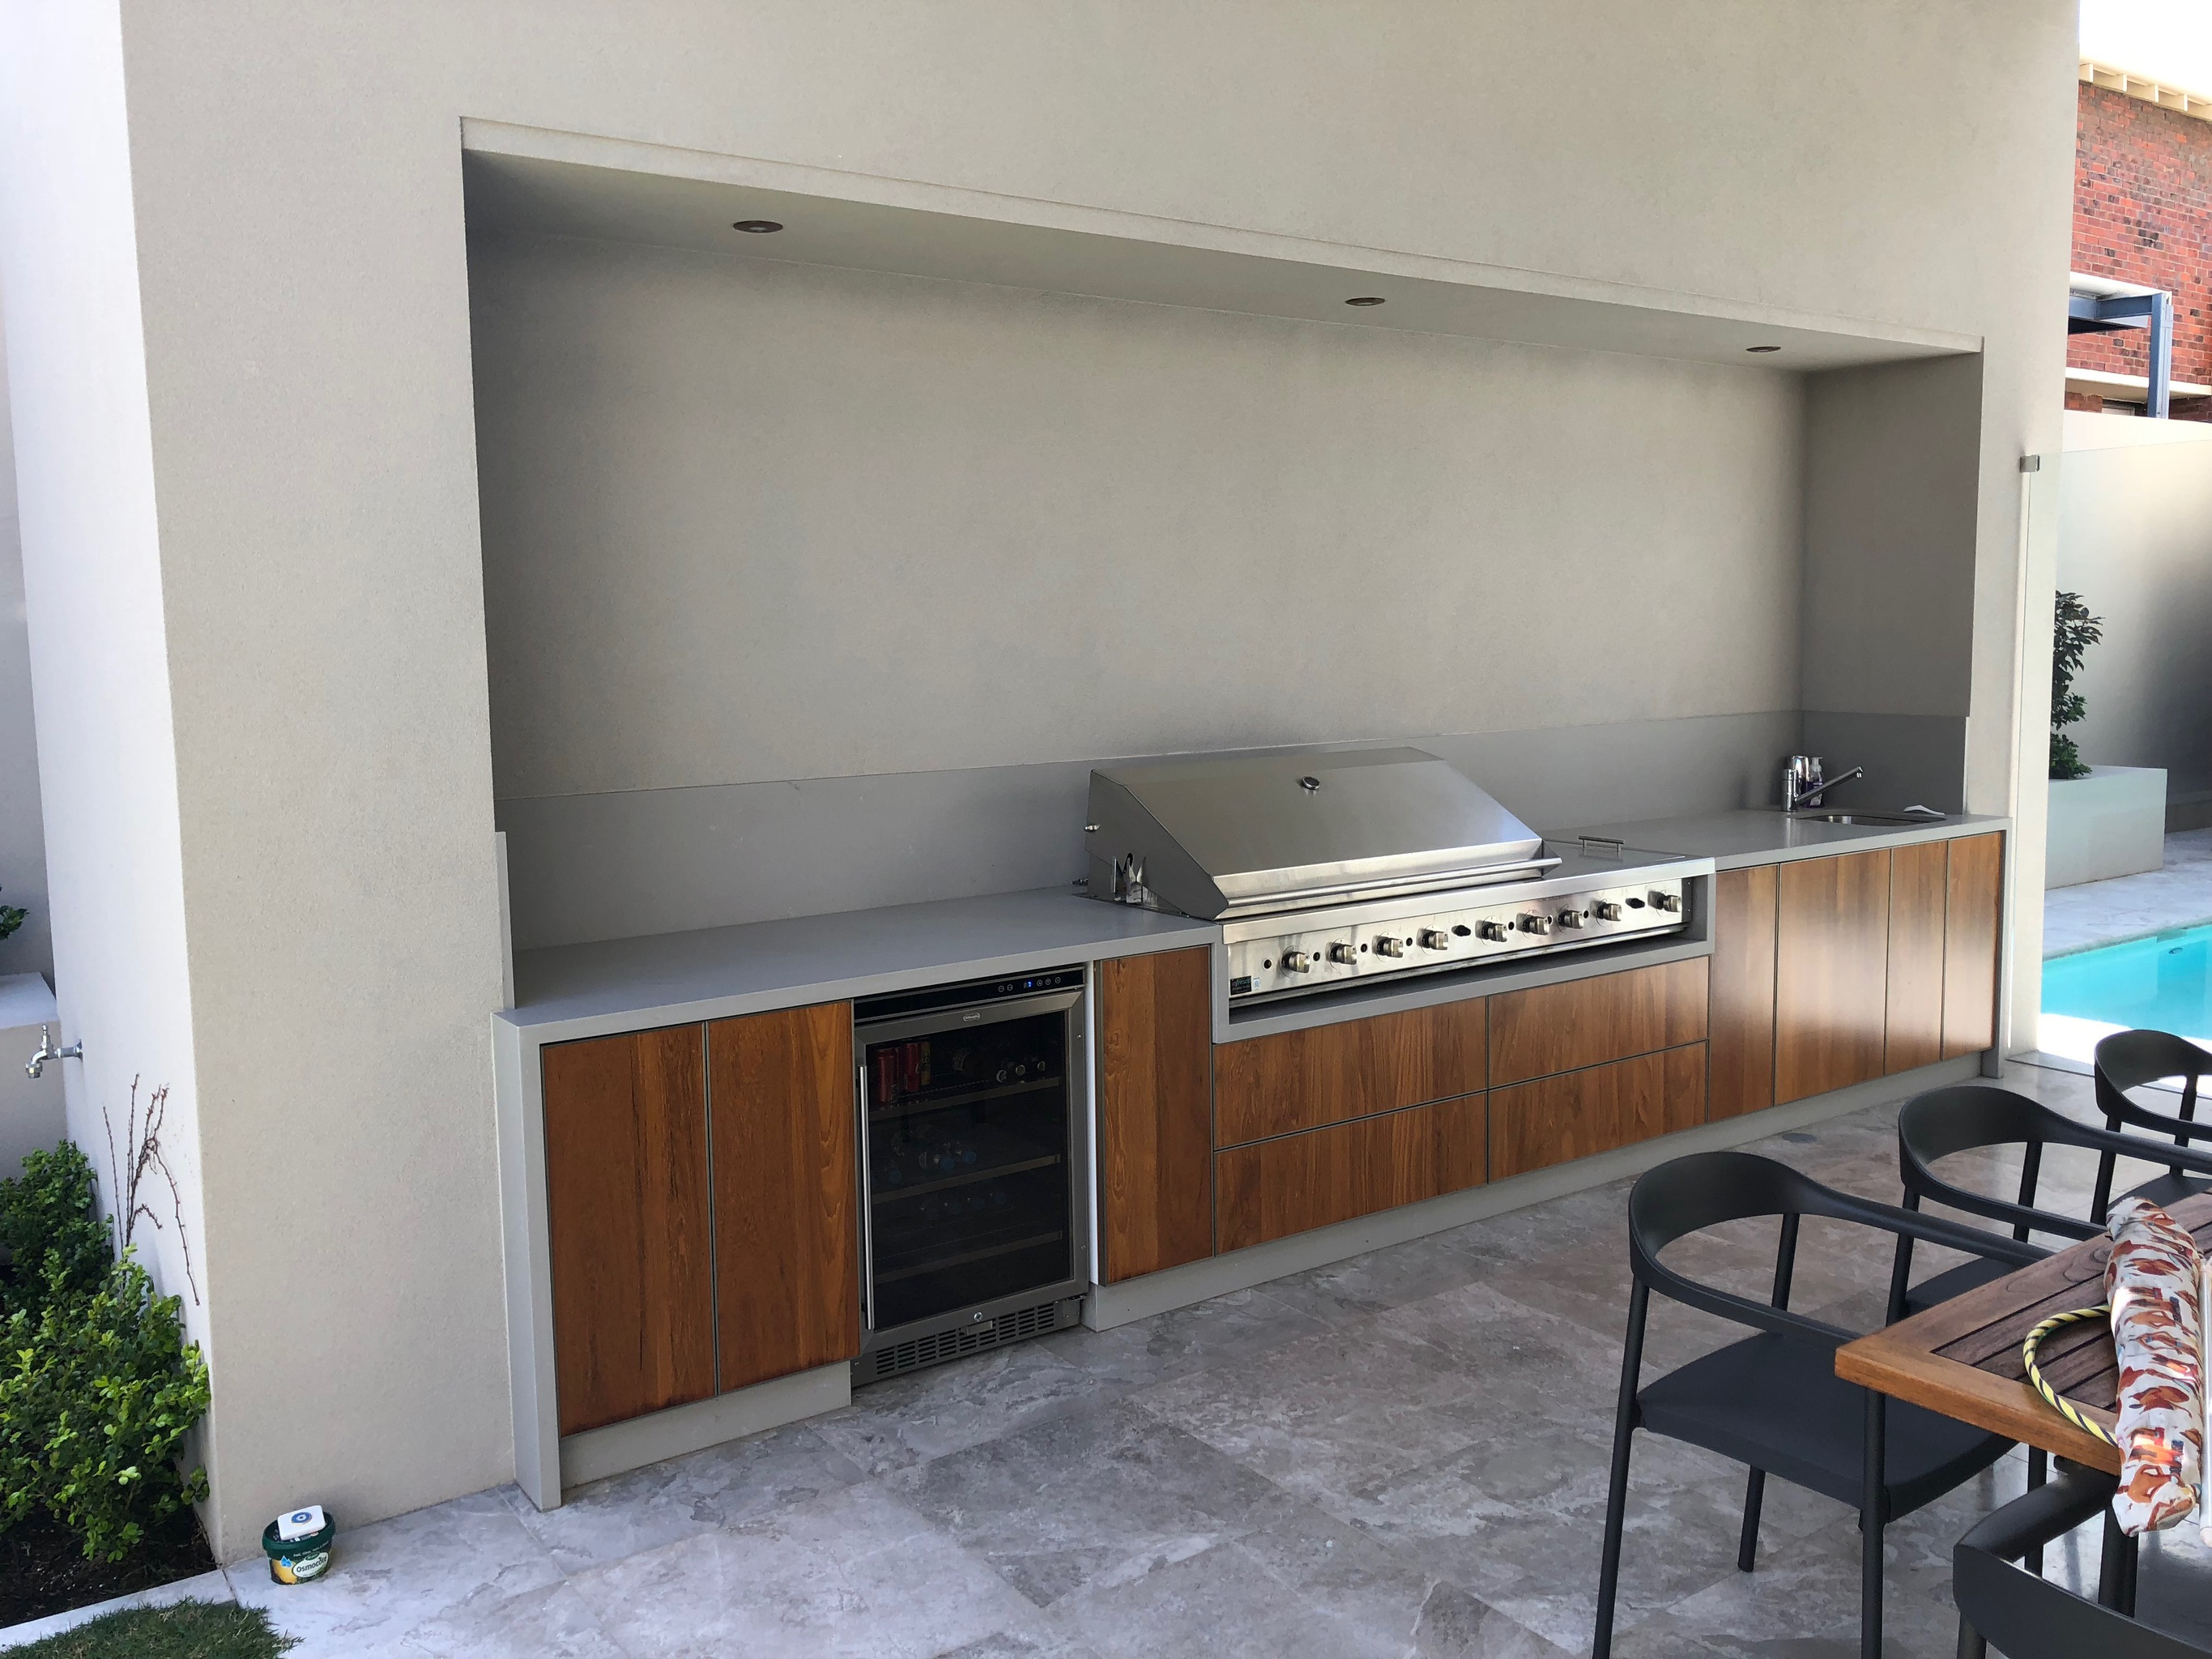 outdoor kitchens perth | Master Class Cabinets